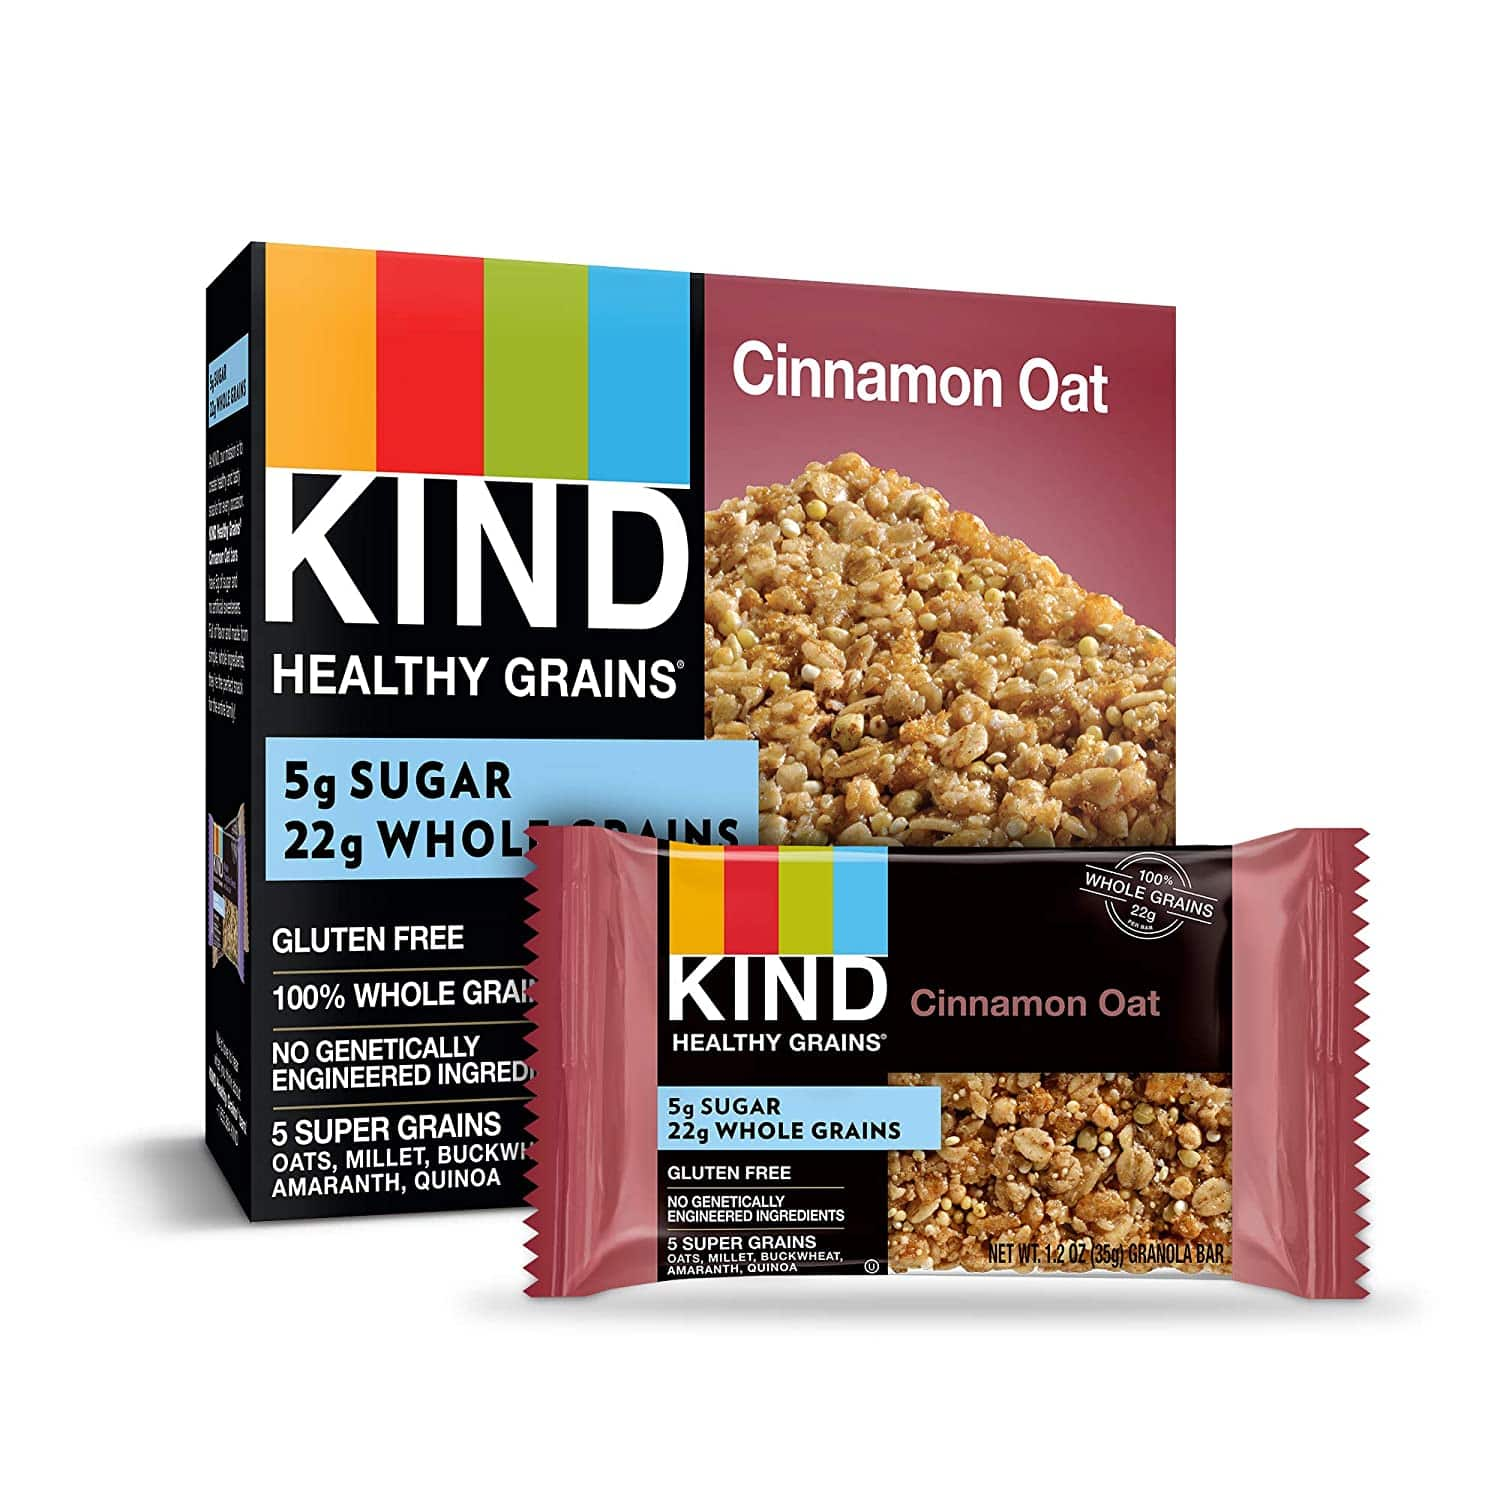 40-Count 1.2-Ounce KIND Healthy Grains Bars (Cinnamon Oat) $11.05 w/ Subscribe & Save